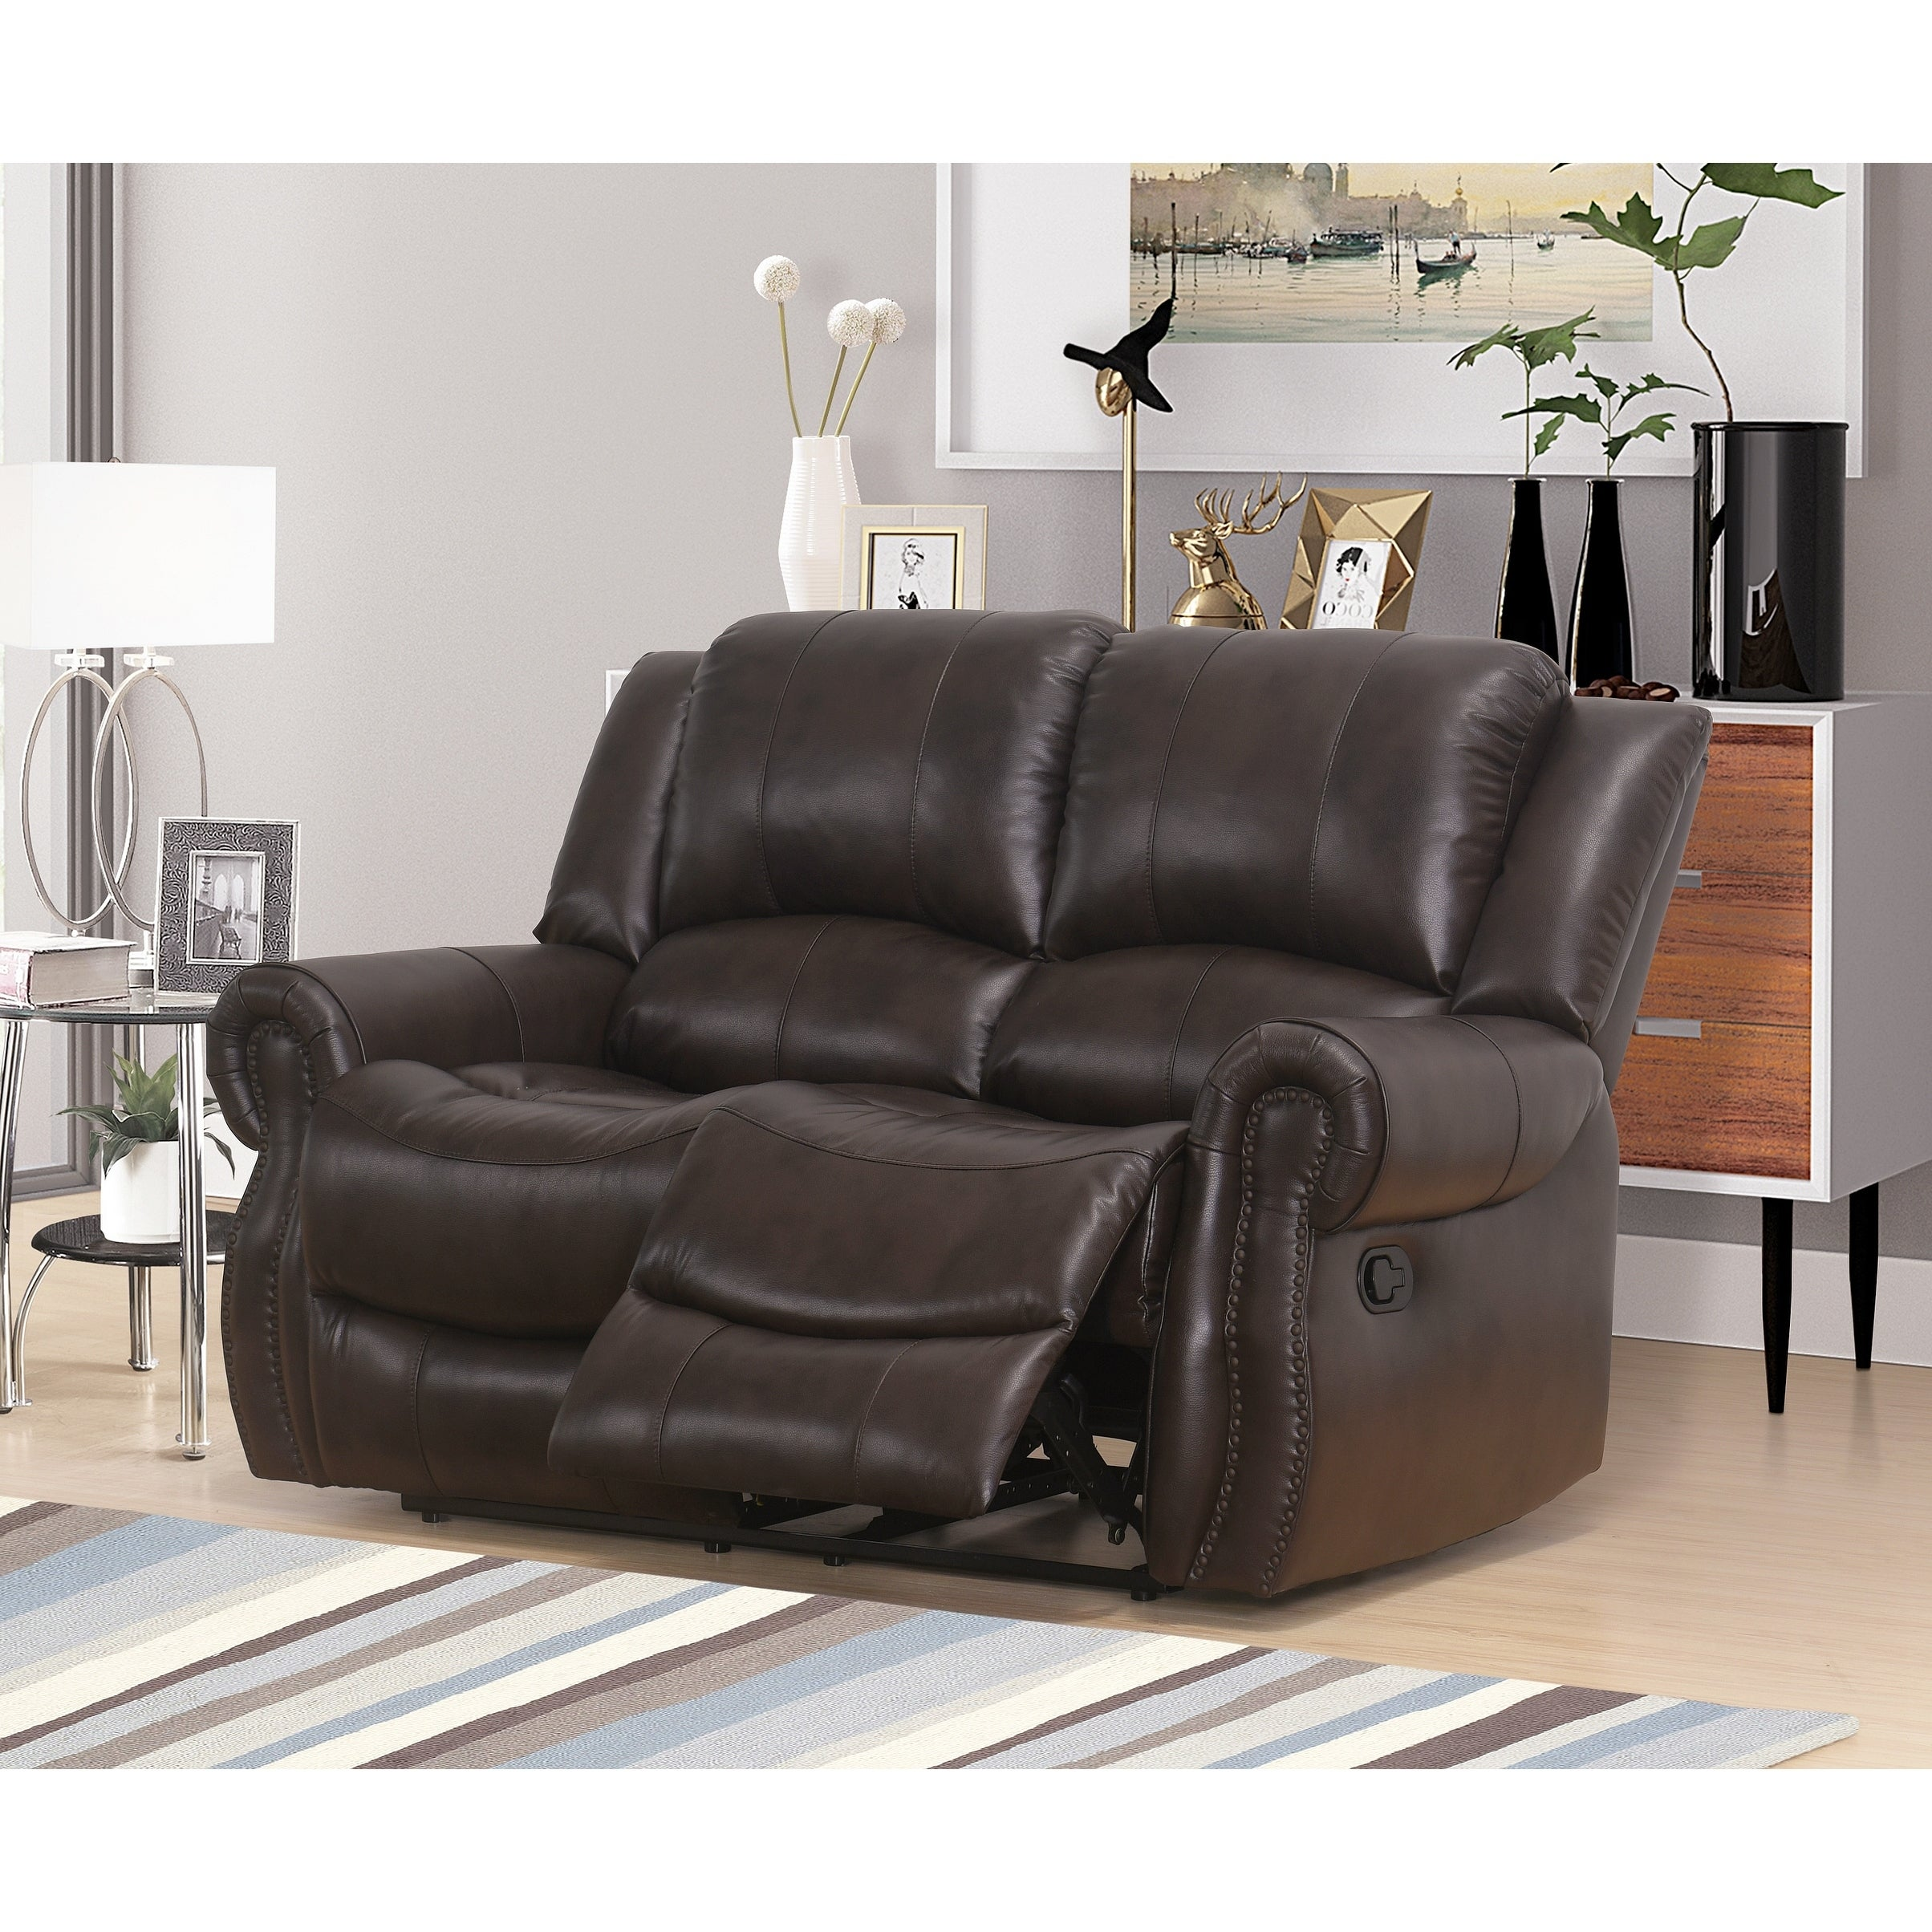 Abbyson Bradford Reclining Brown 3 Piece Faux Leather Living Room